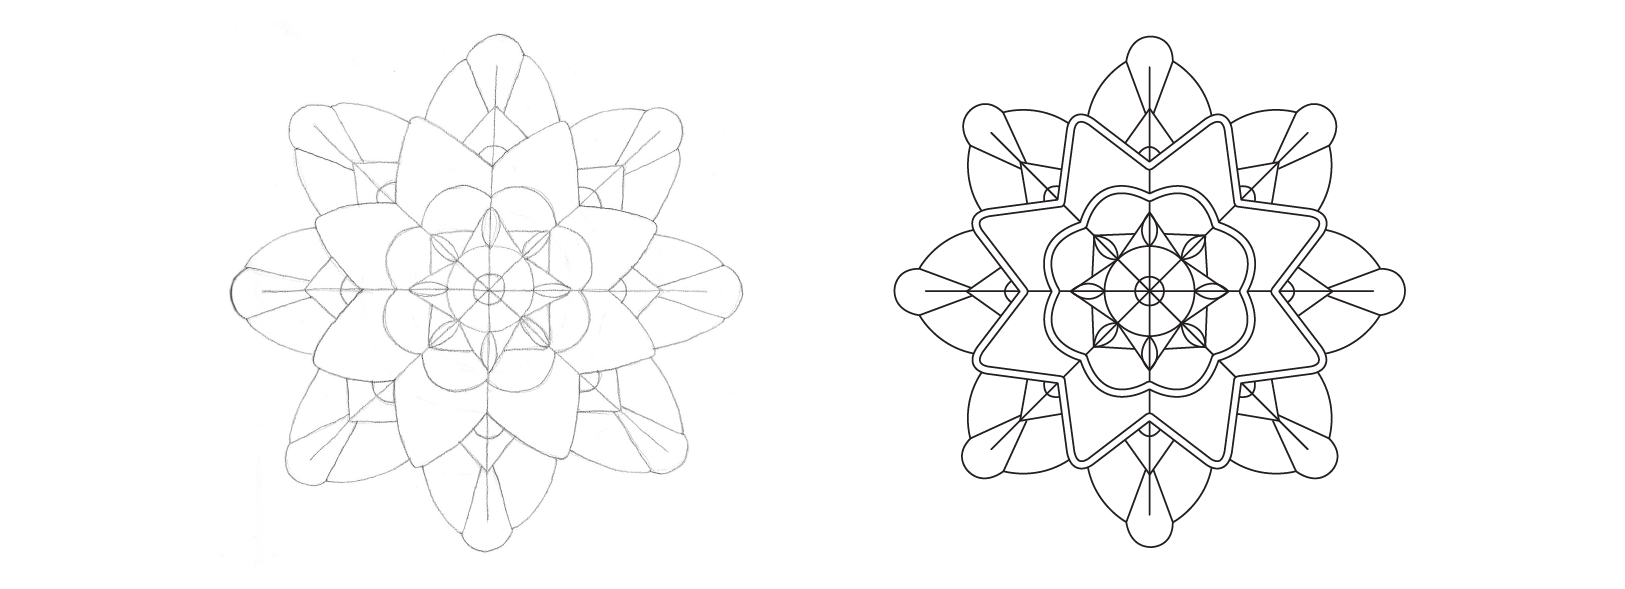 Drawing Geometric Designs: From Hand Sketch to Digital Pattern